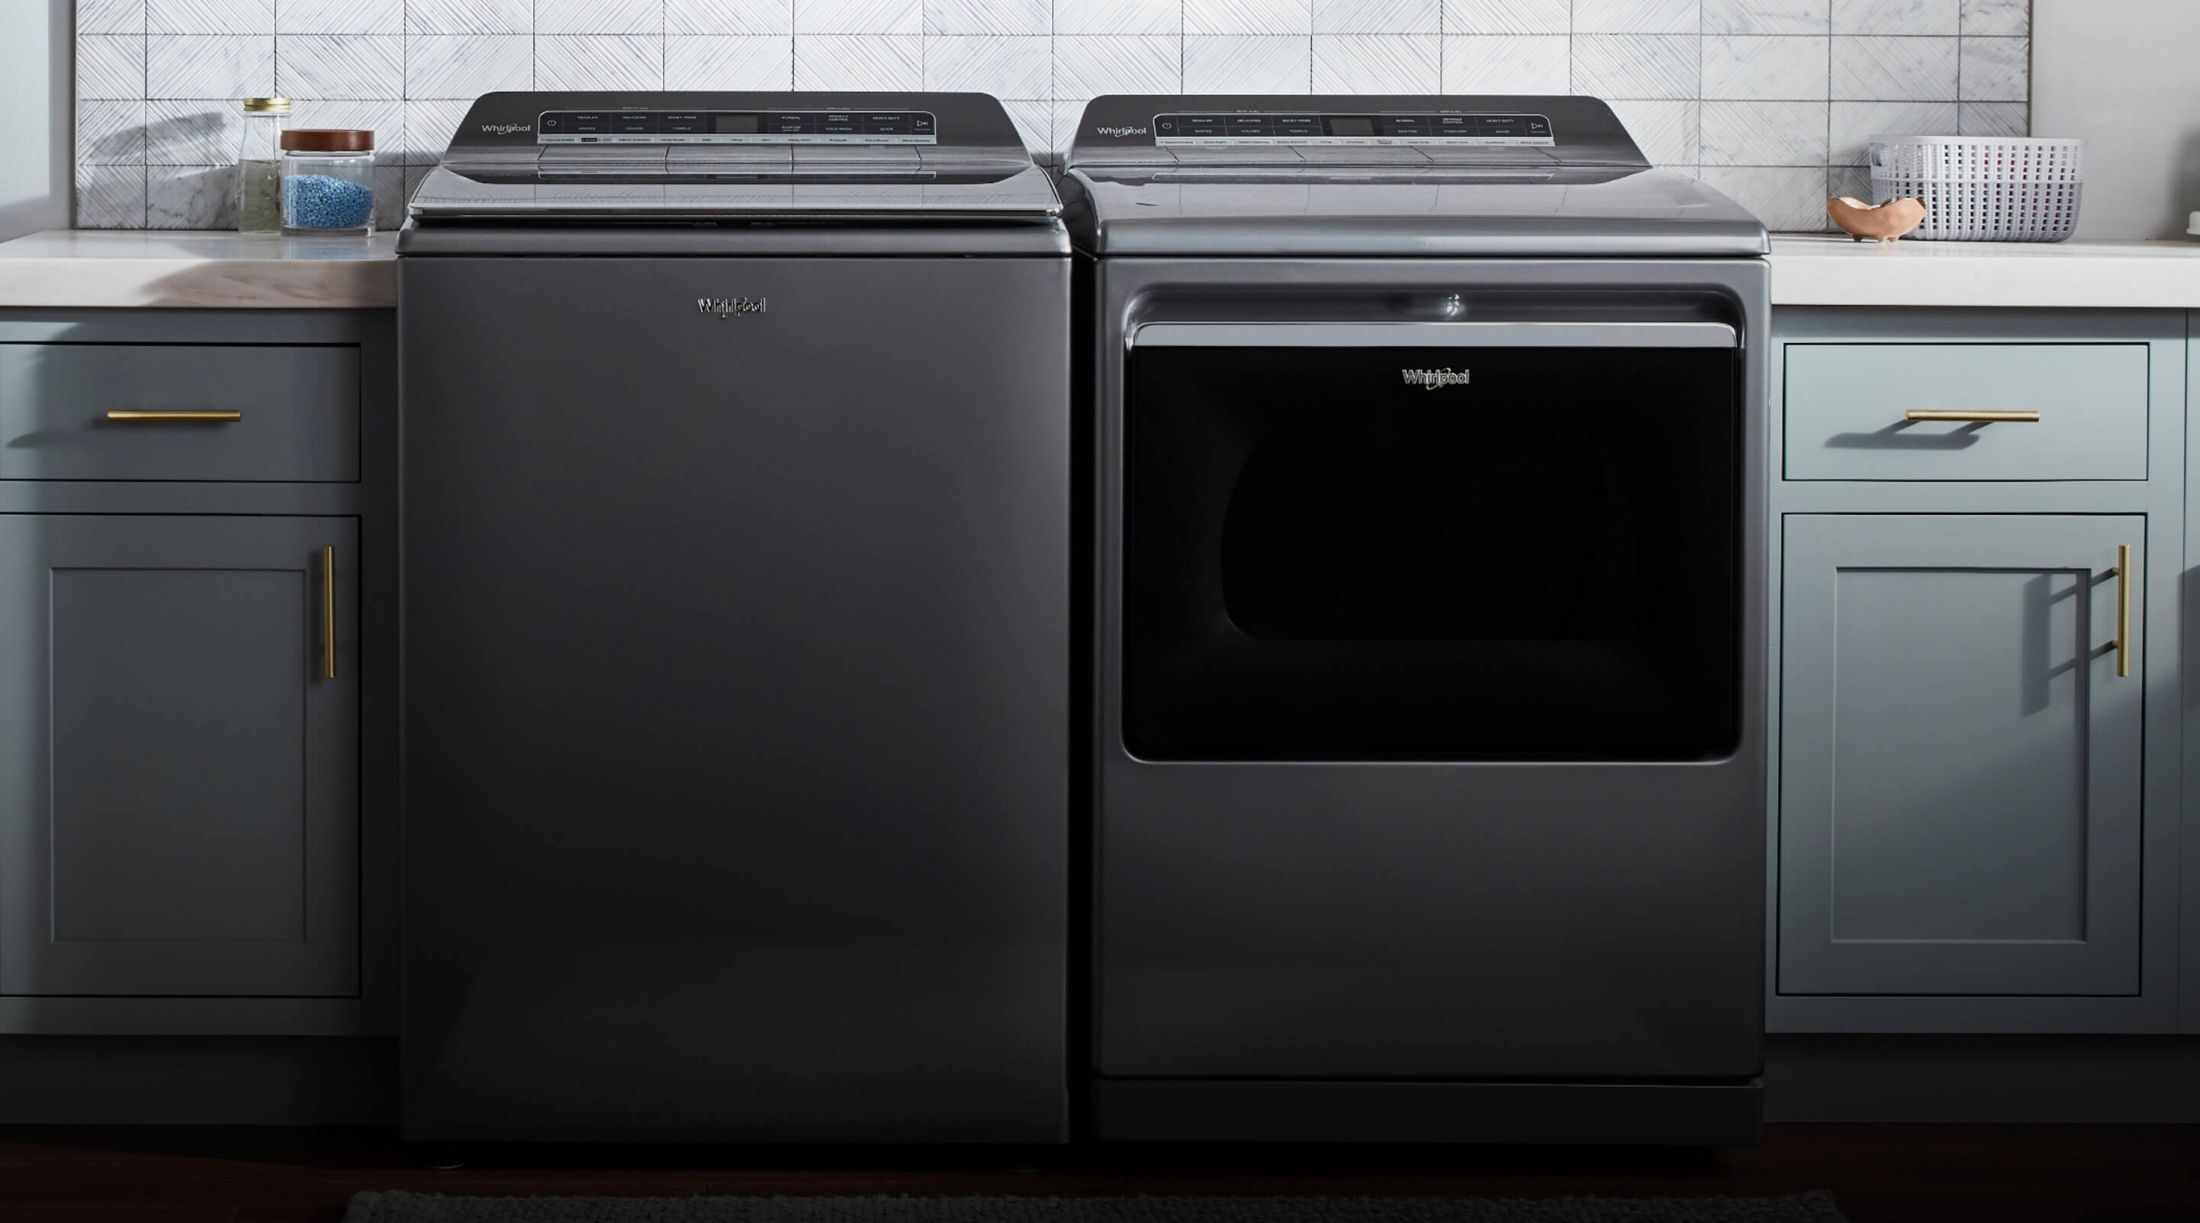 Whirlpool® Smart Capable Top Load Washer and Dryer in a laundry room